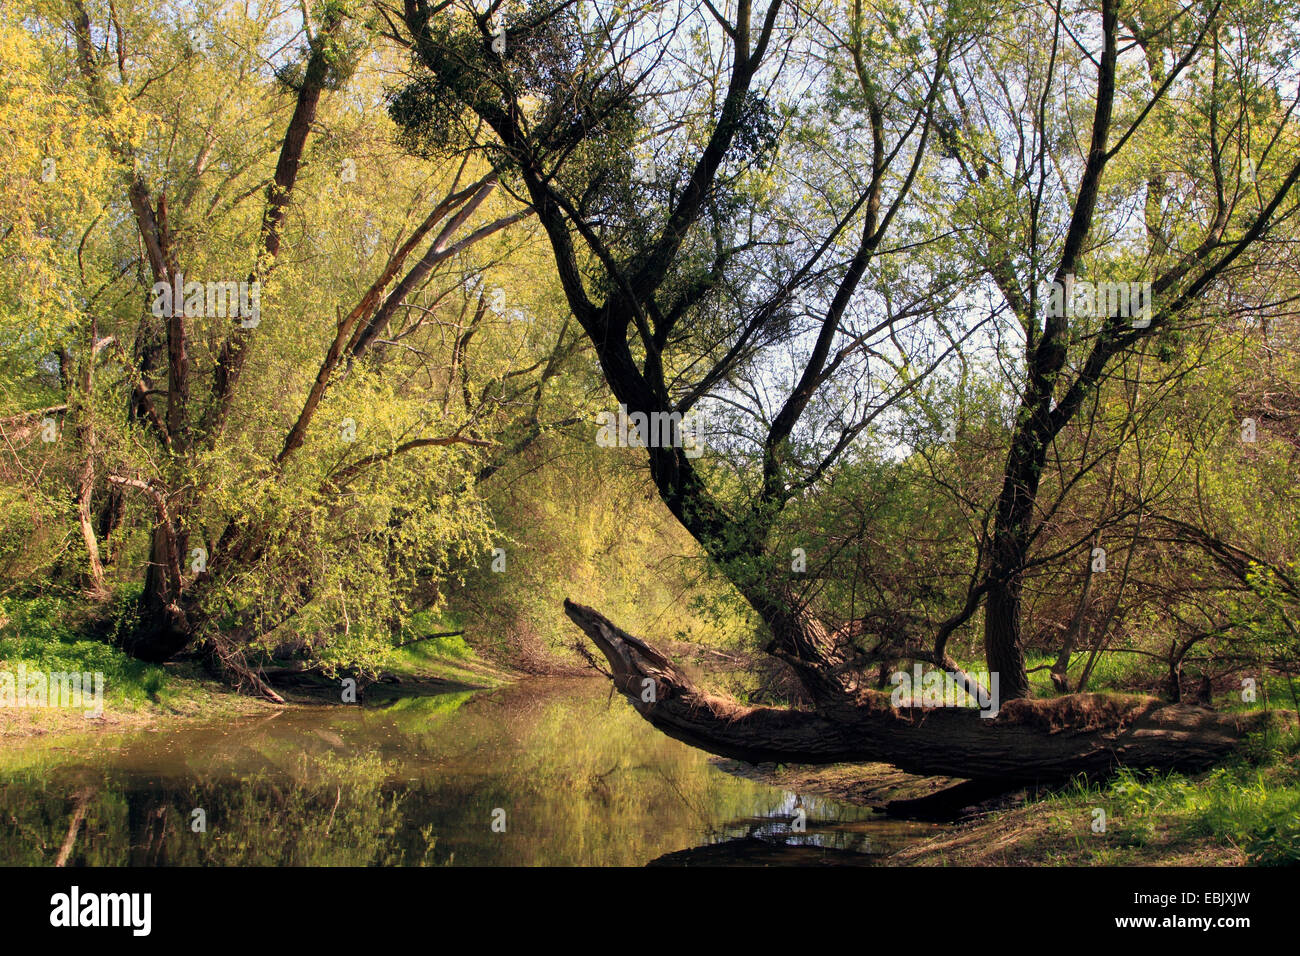 floodplain forest in spring, Germany - Stock Image